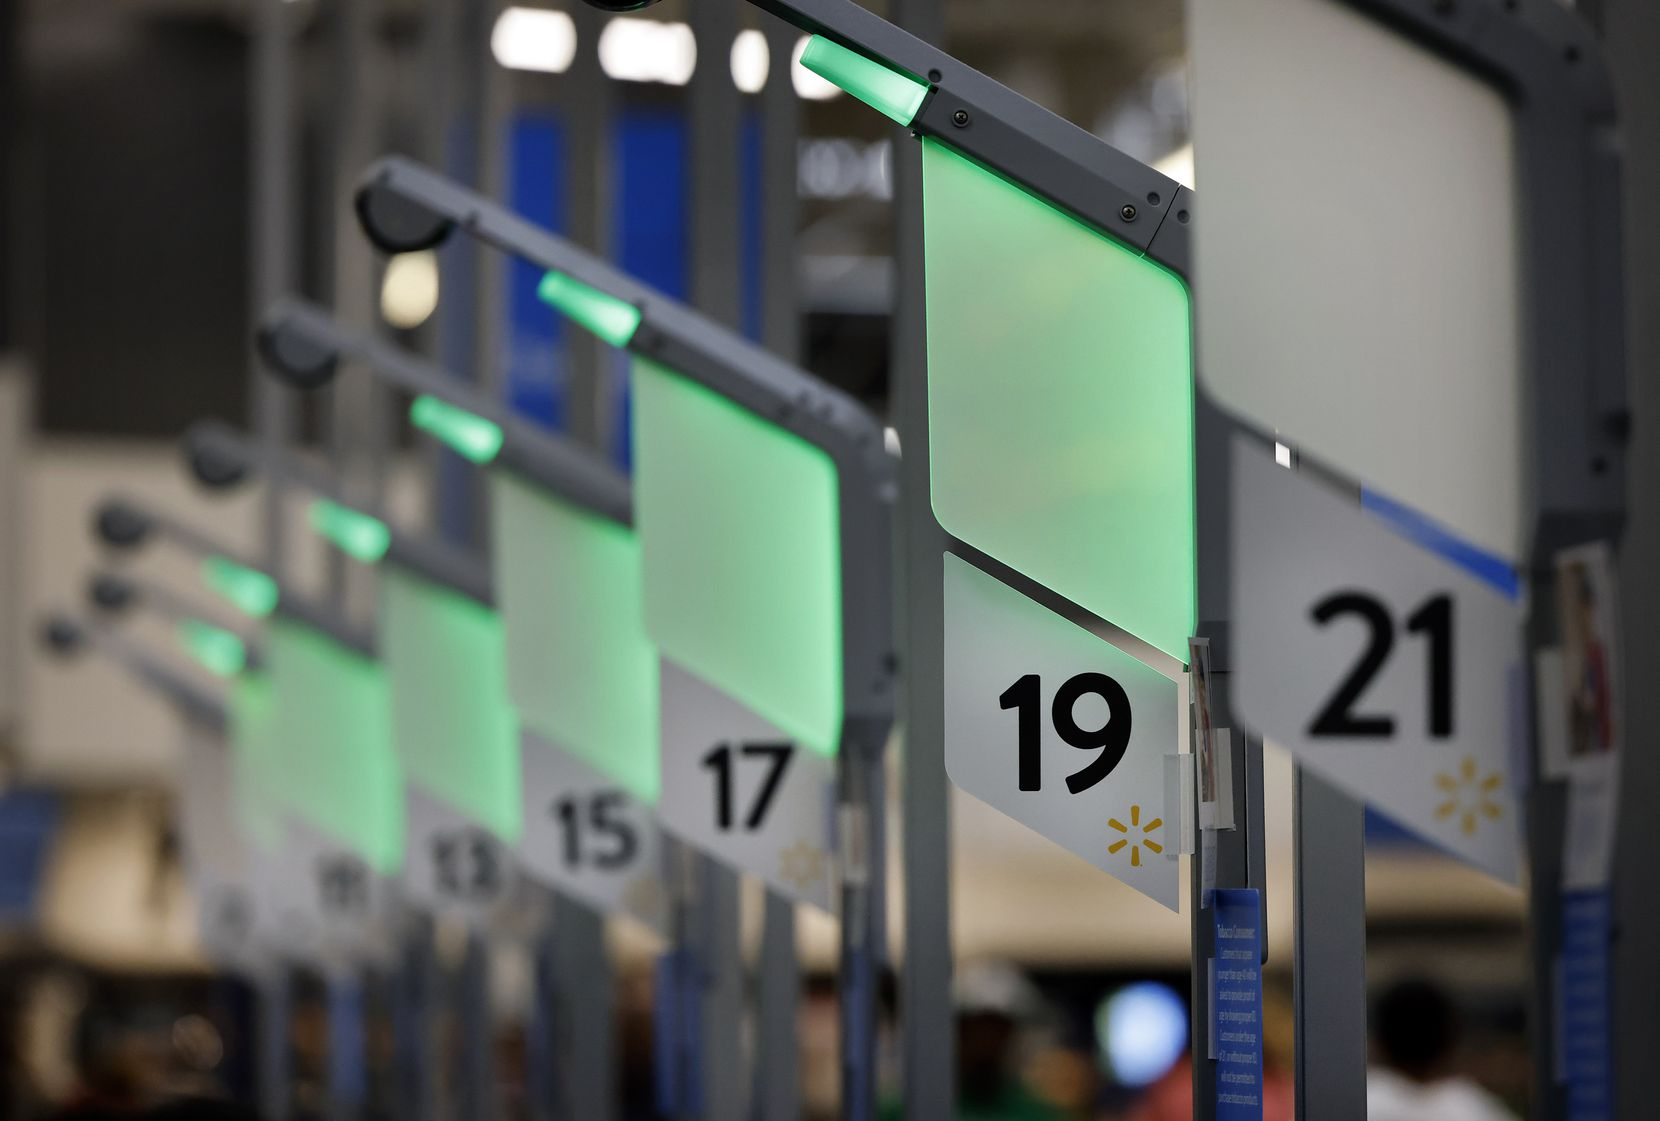 Green lights at self checkout stations inform customers of an open scanner at the Walmart Supercenter on Ohio Drive in Plano, Texas.